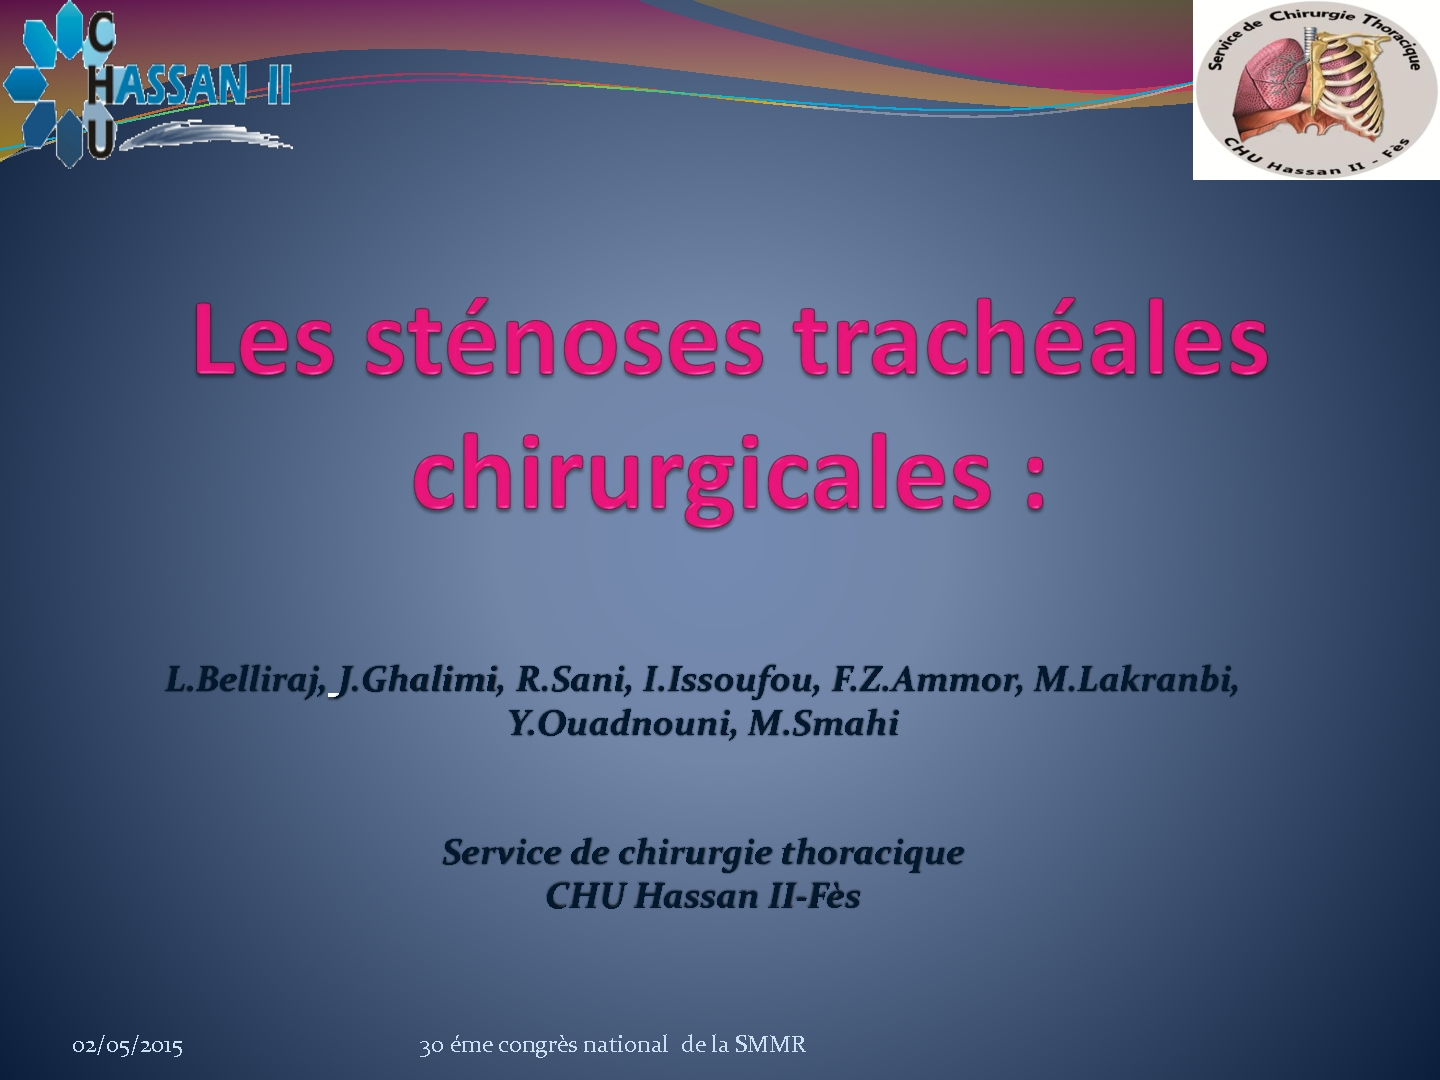 Les sténoses trachéales chirurgicales